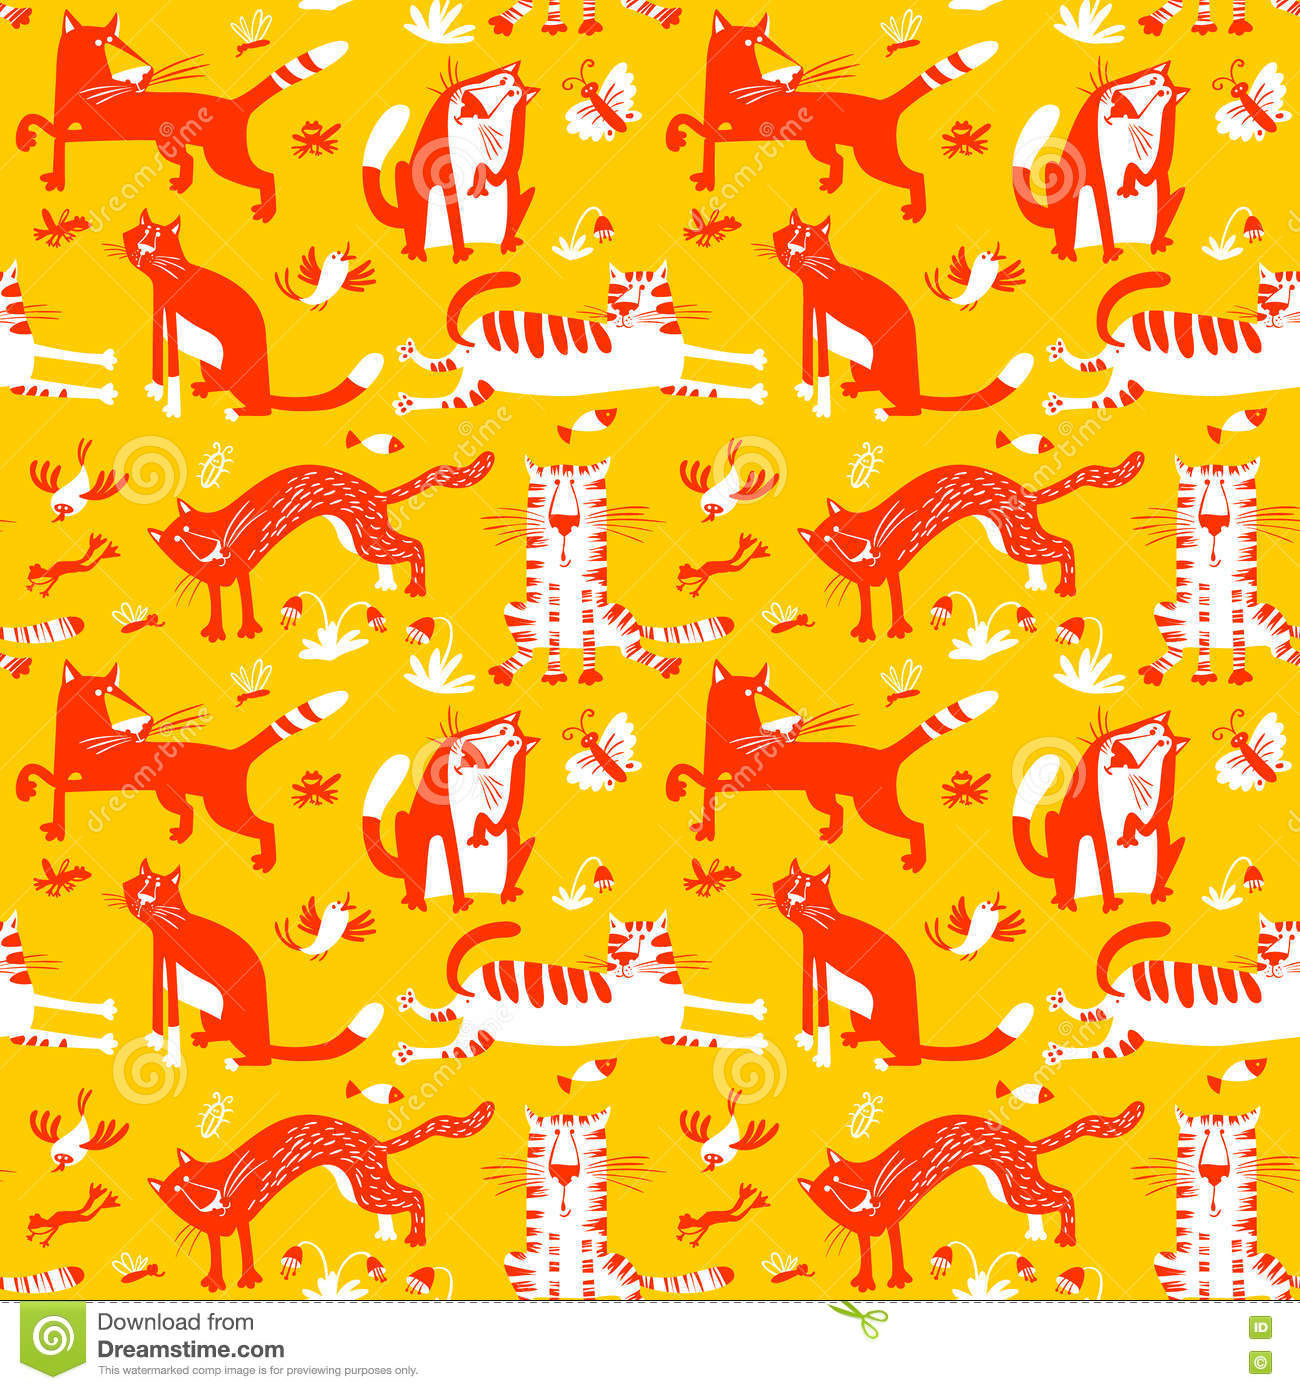 Flat Seamless Pattern With Funny Cats Vector Background In Chil